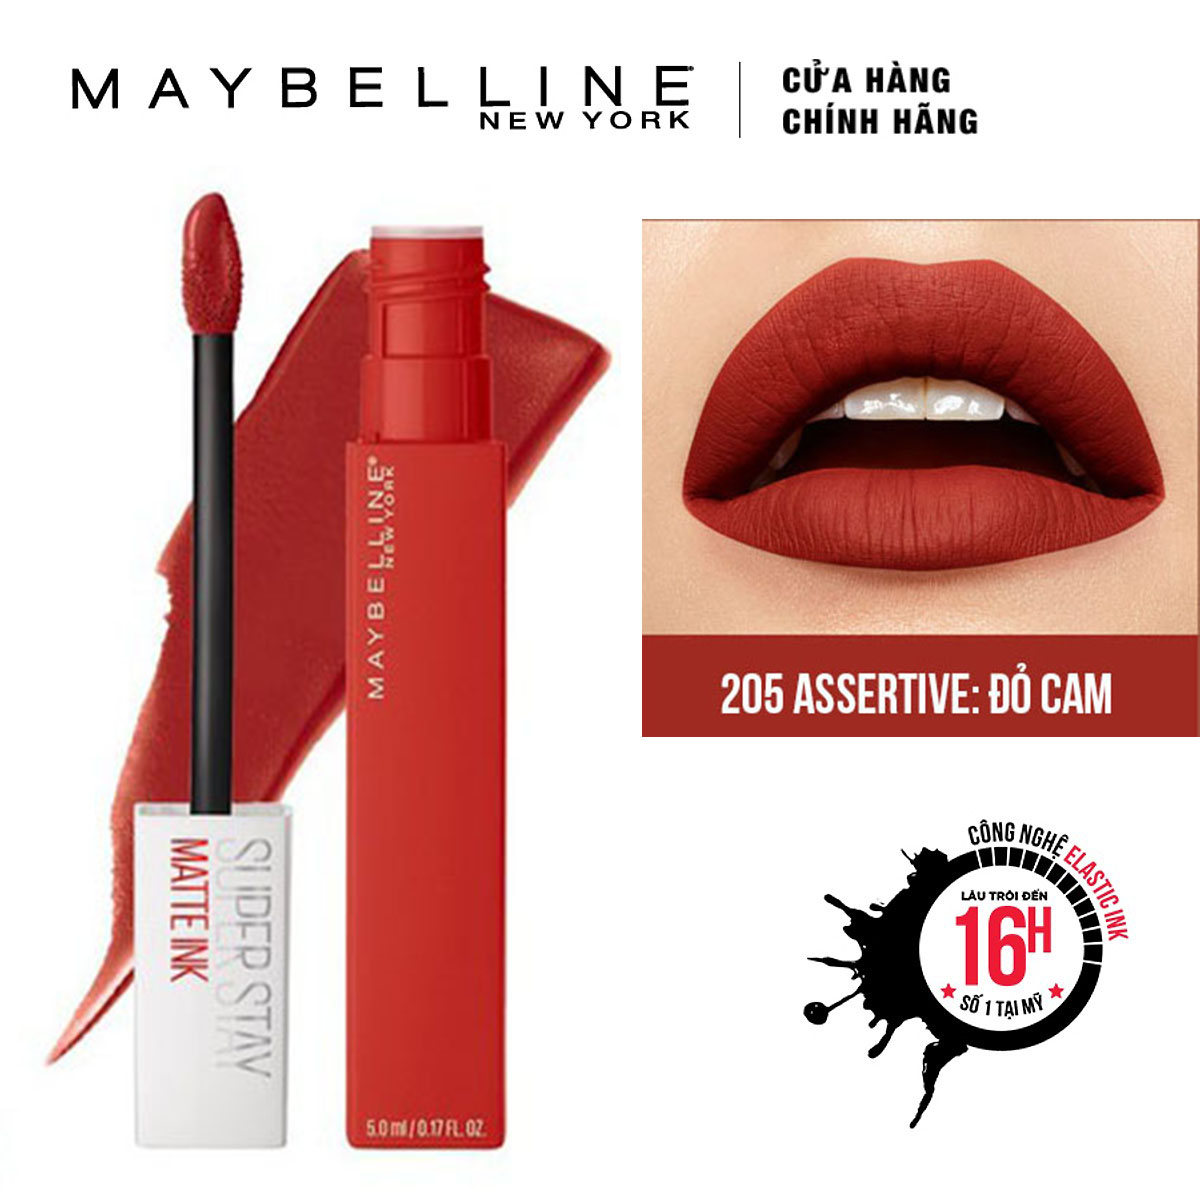 Son Kem Lì Maybelline Super Stay Matte Ink 5ml - Màu 205 Assertive